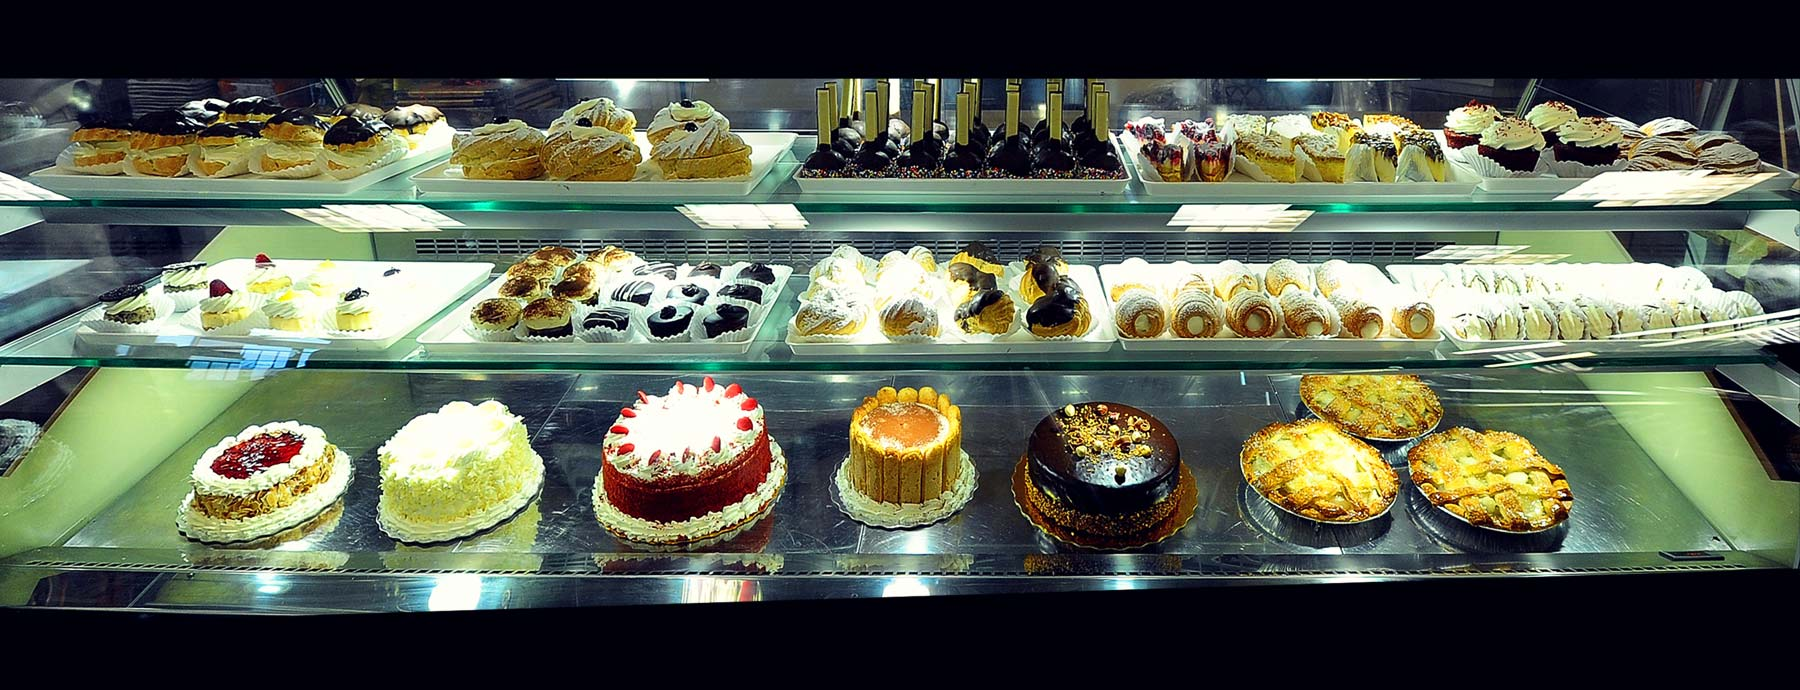 Cakes and Pastries